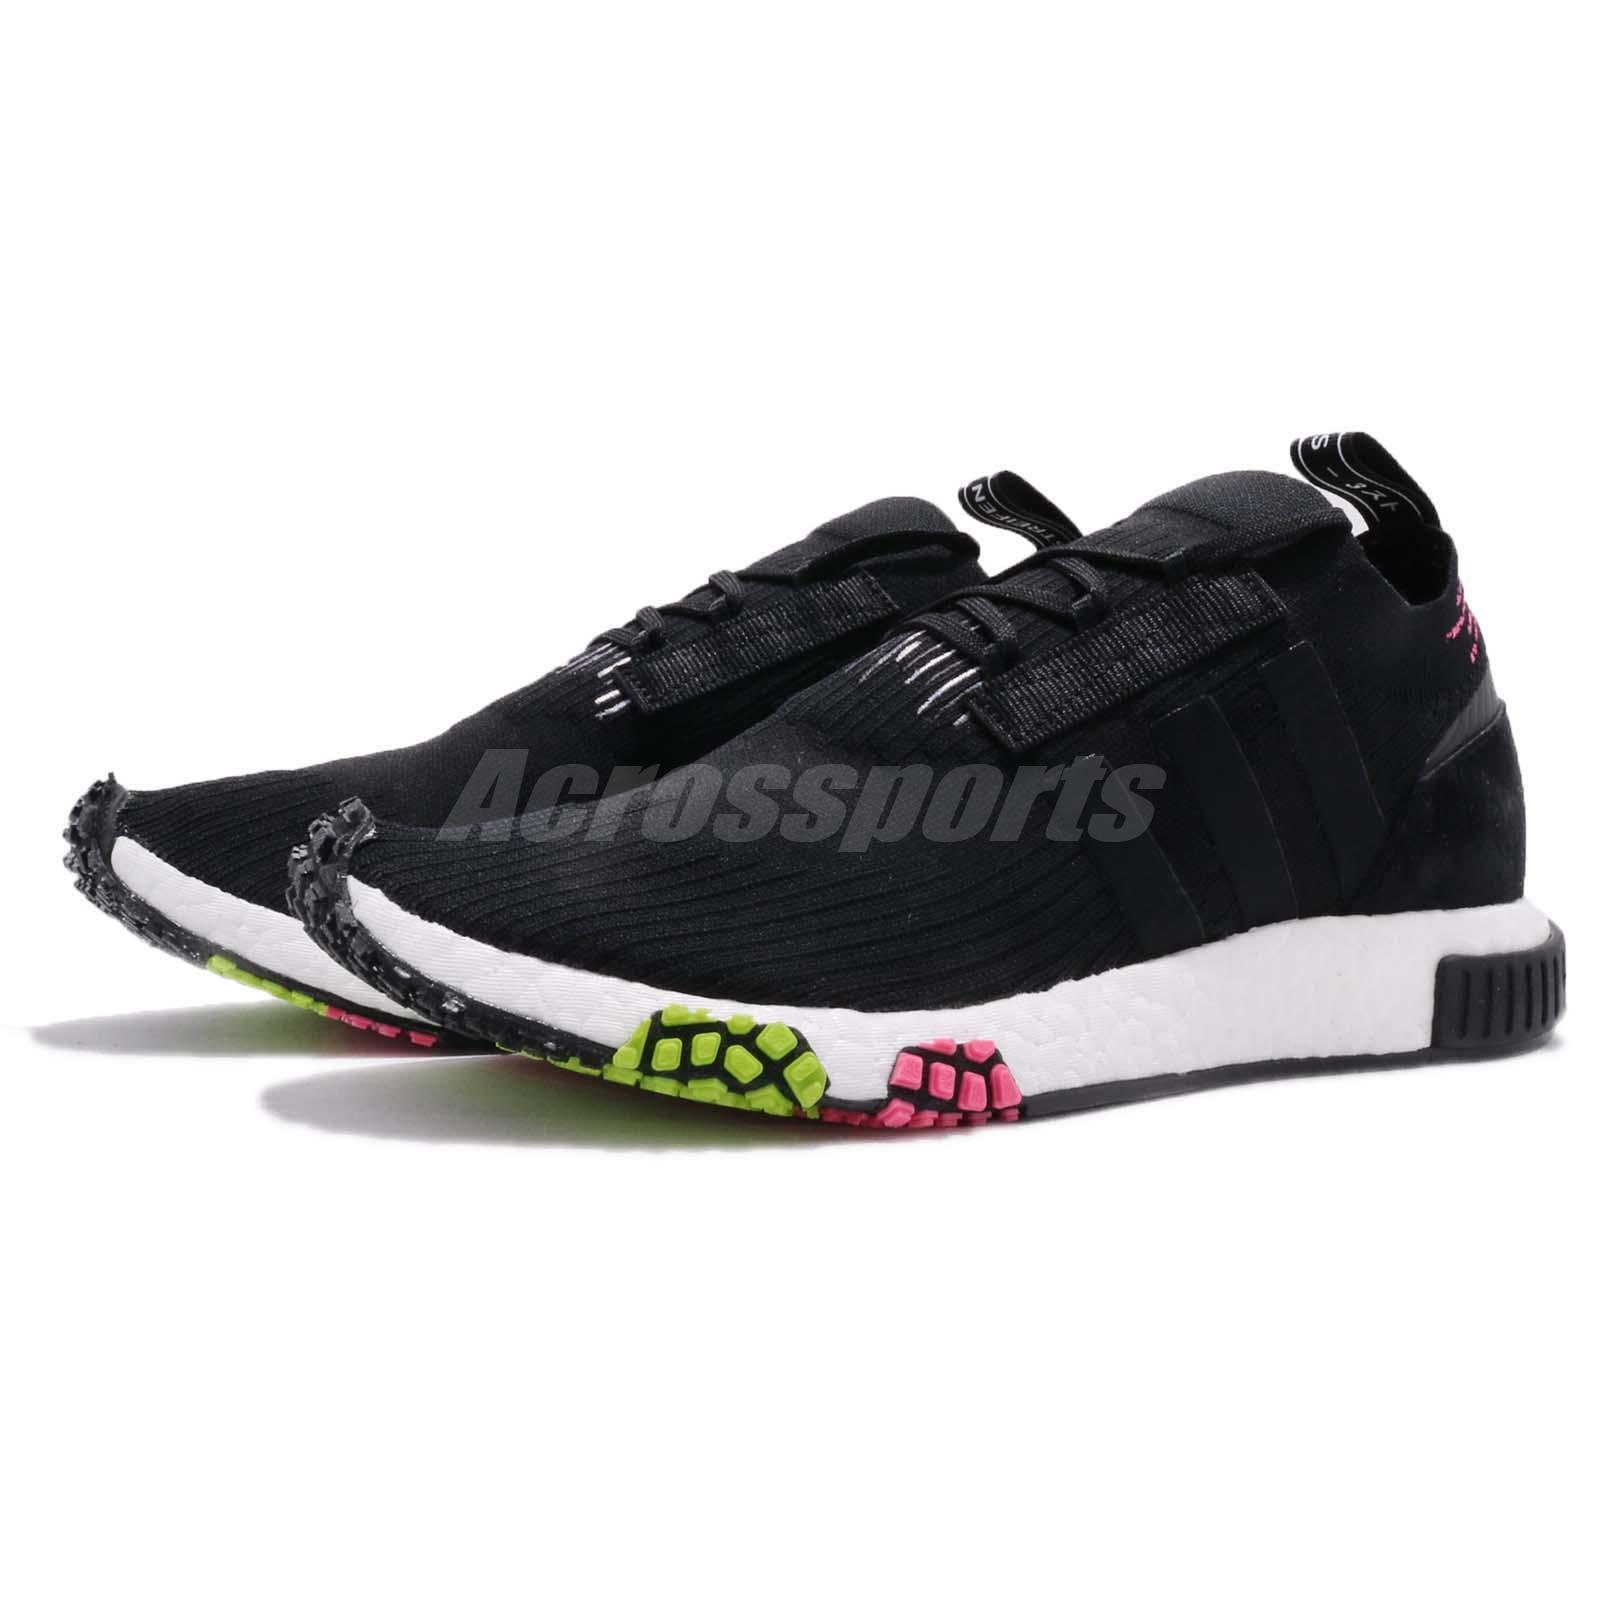 finest selection 4e425 cebba adidas Originals NMD Racer PK PrimeKnit Black Pink Green Men Running ...